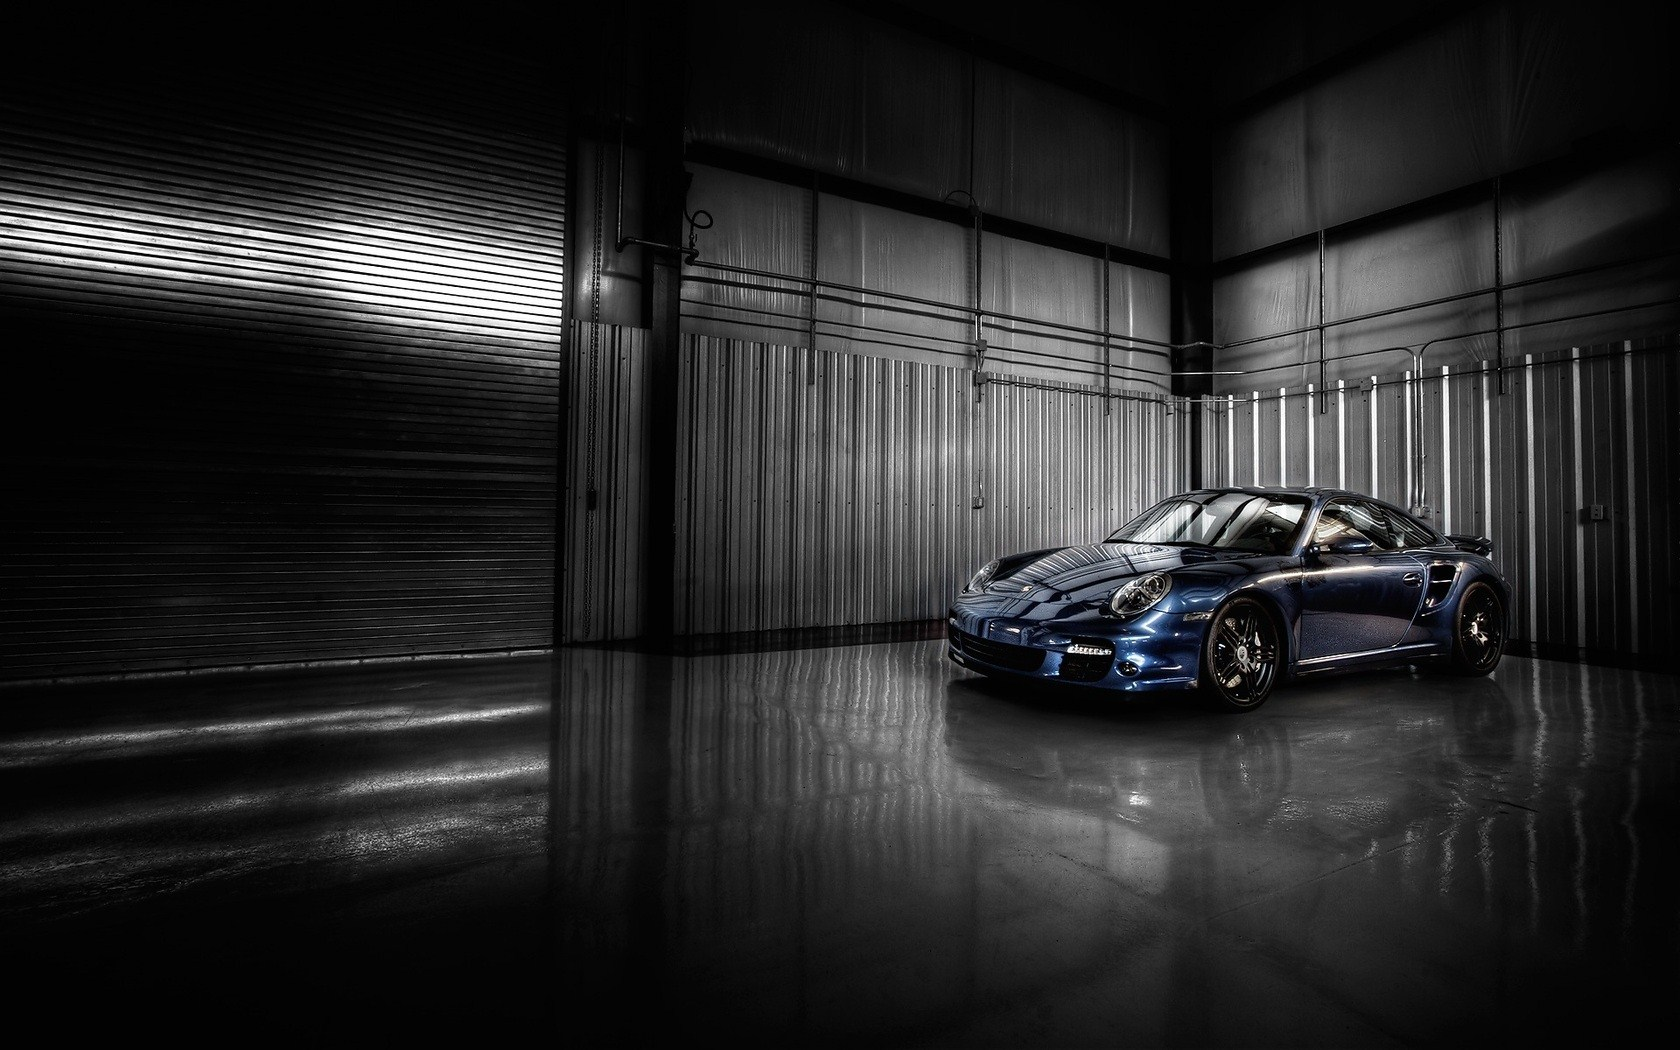 Garage Hd Wallpaper 1680x1050 17004